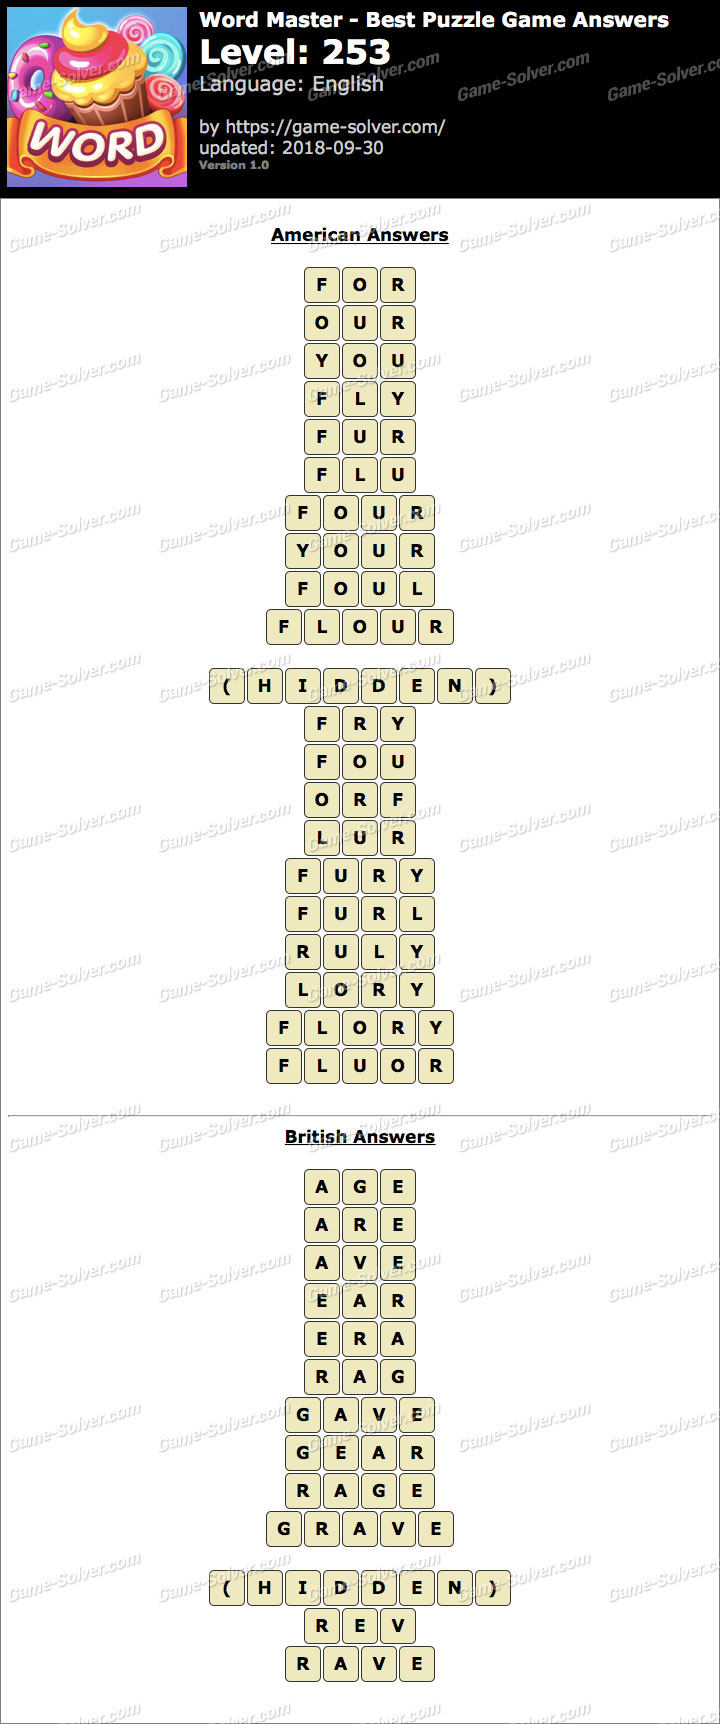 Word Master-Best Puzzle Game Level 253 Answers